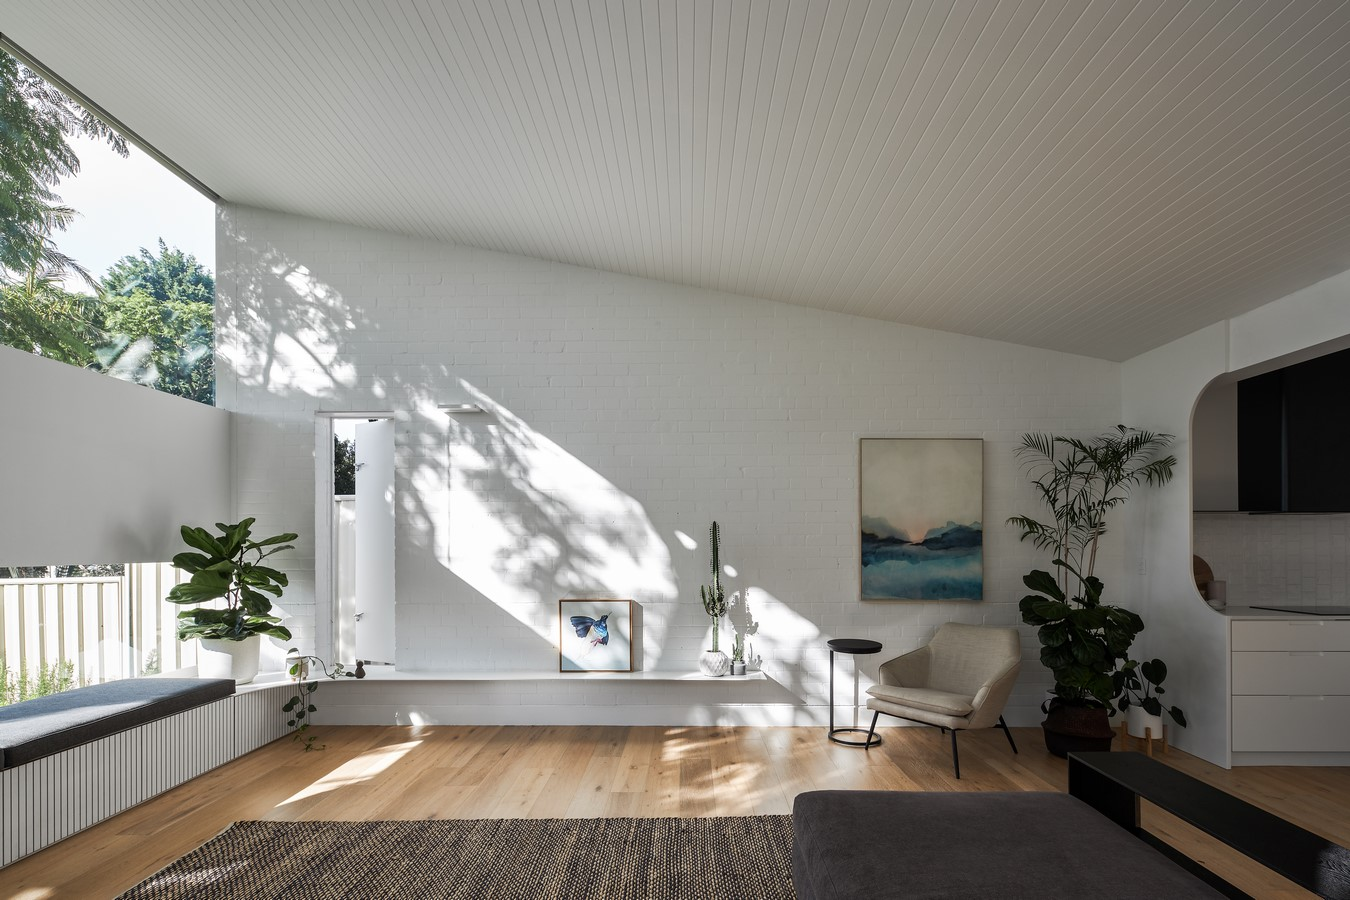 House Flower by Berresford Architecture - Sheet2